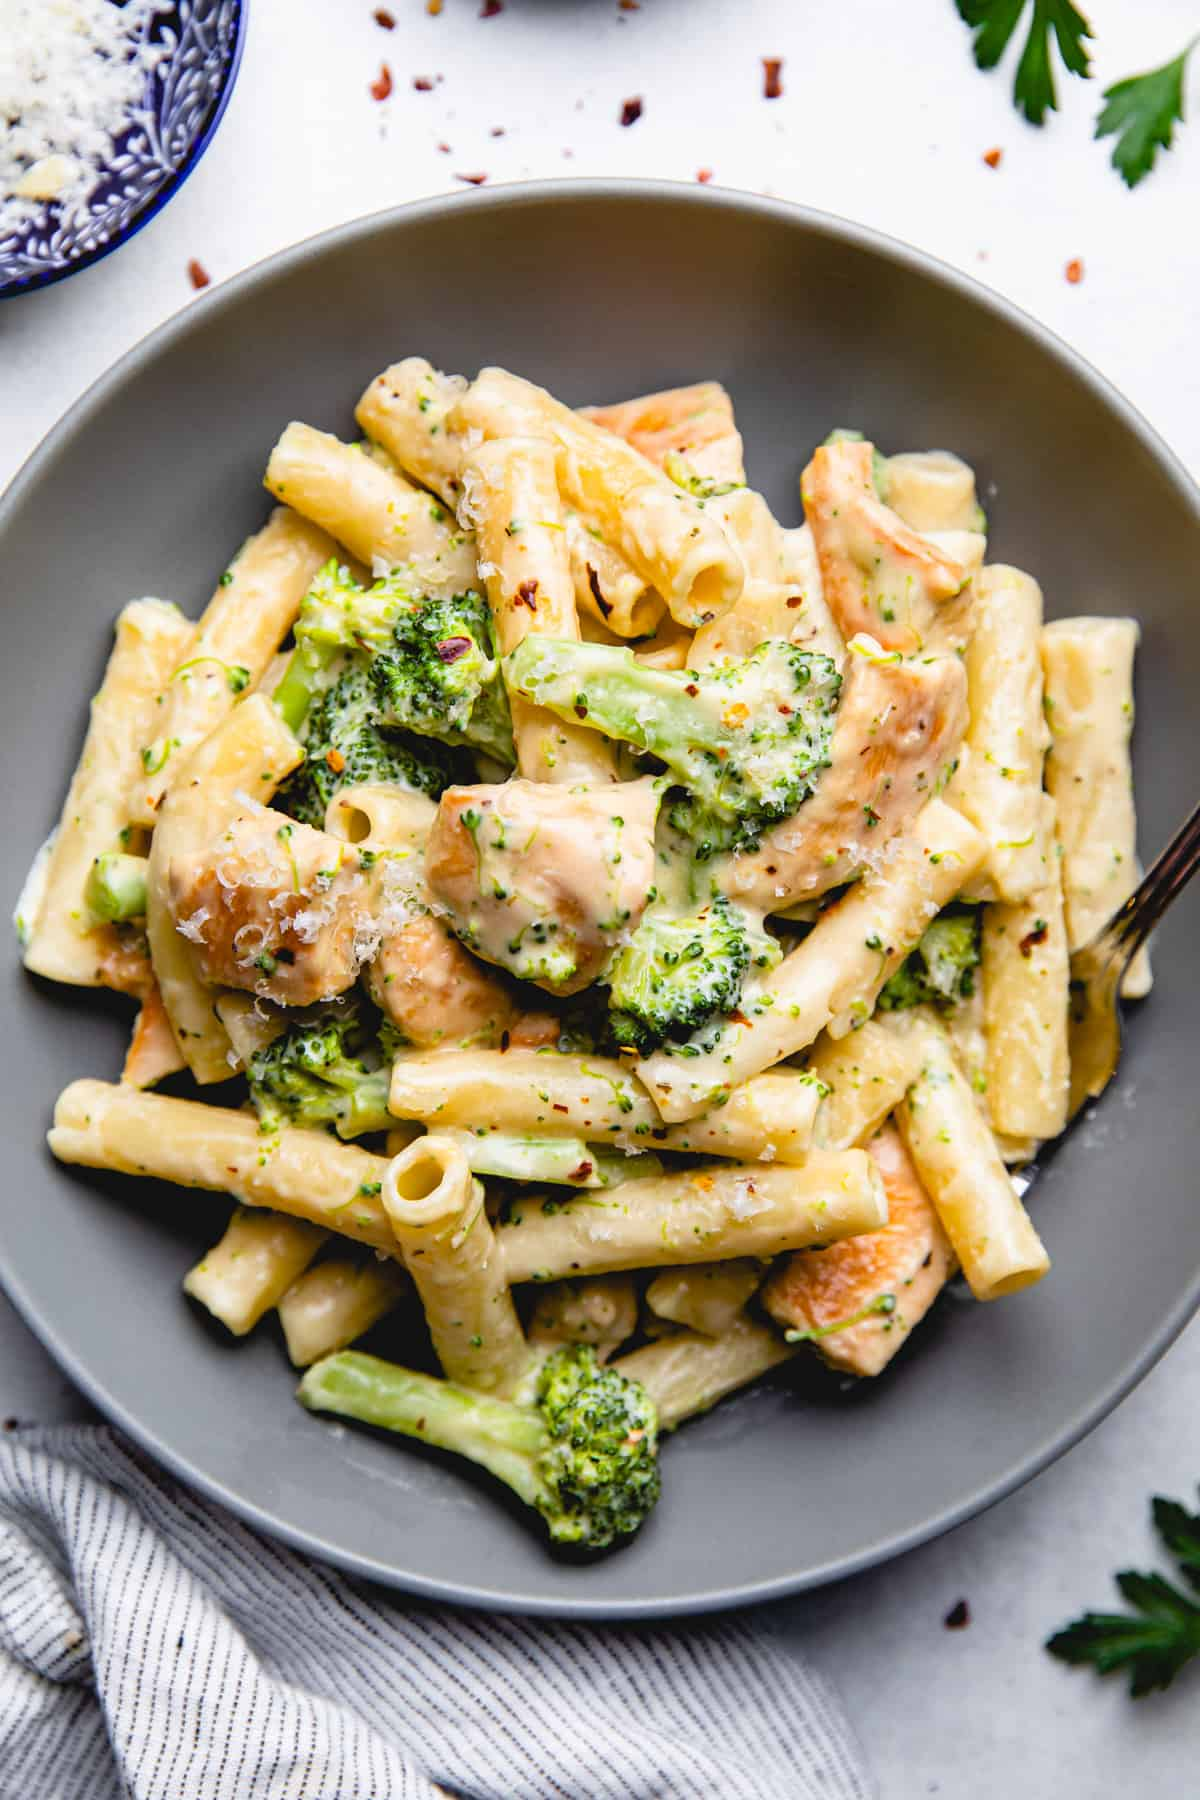 Pasta, diced chicken, and broccolli in creamy sauce in a grey plate.